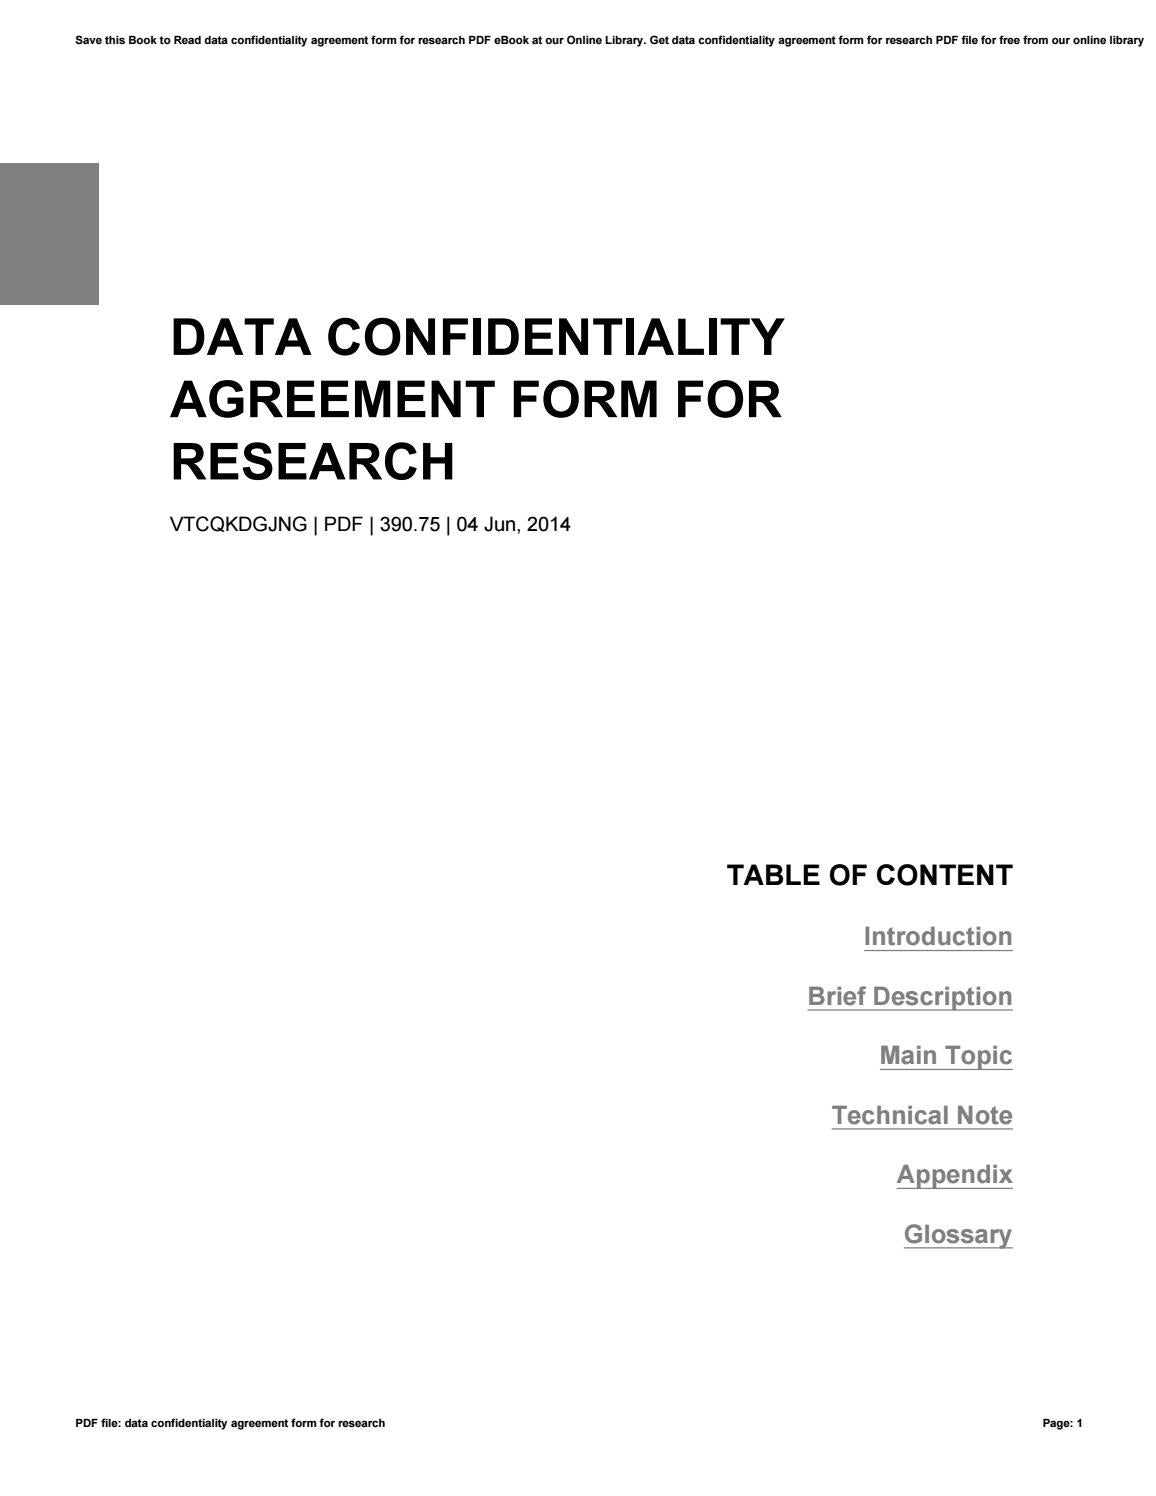 Data Confidentiality Agreement Form For Research By 69postix915 Issuu